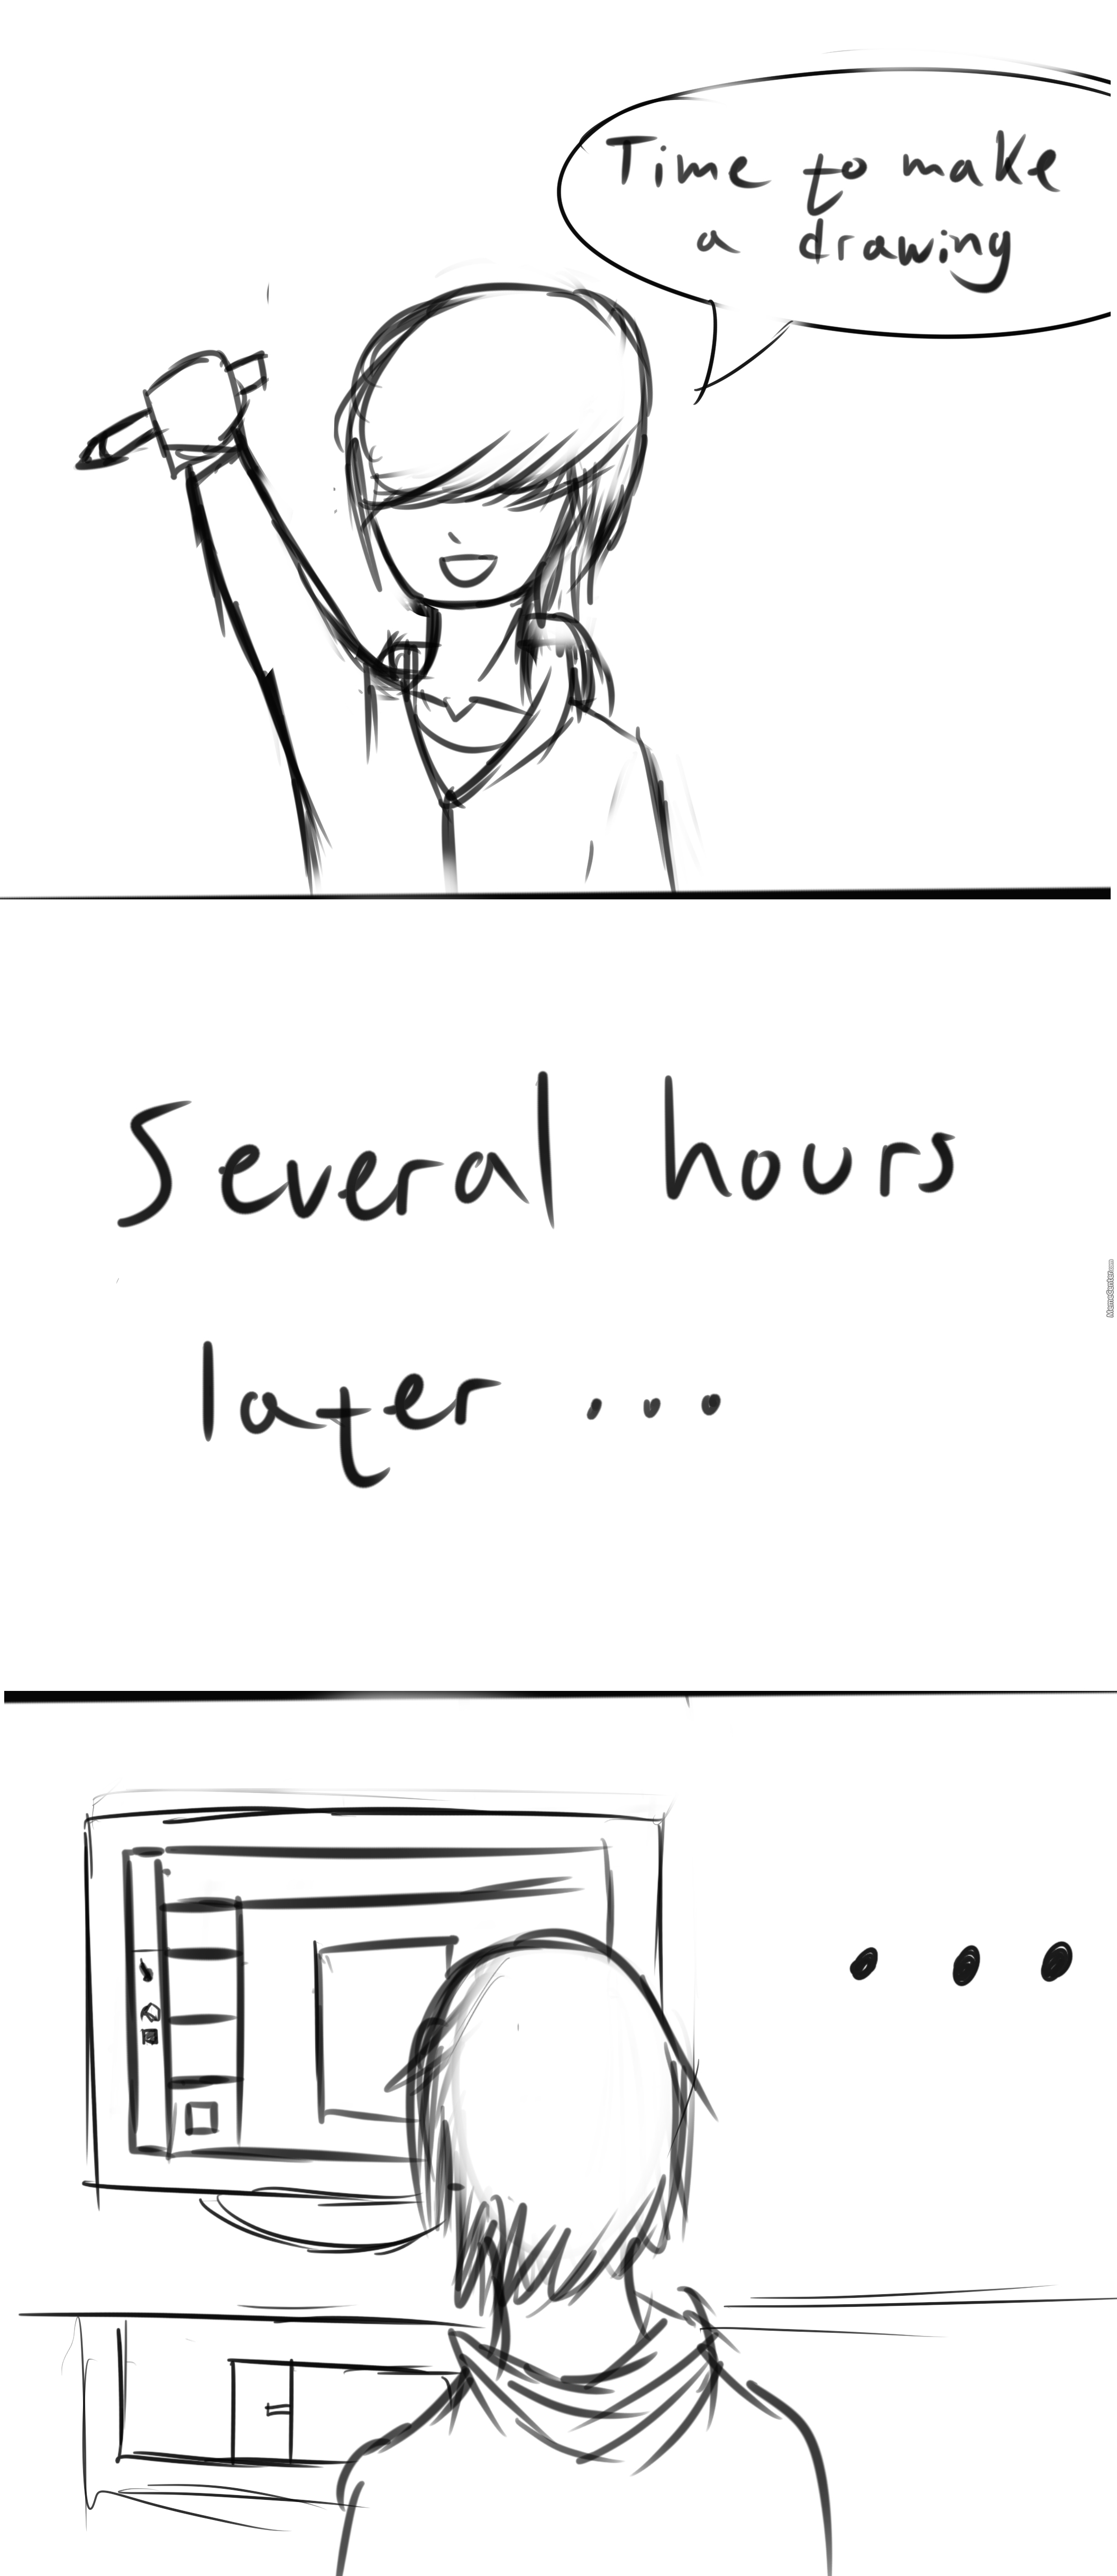 Felt Like Drawing Something Made A Crappy Comic Instead, Hope You Enjoy It